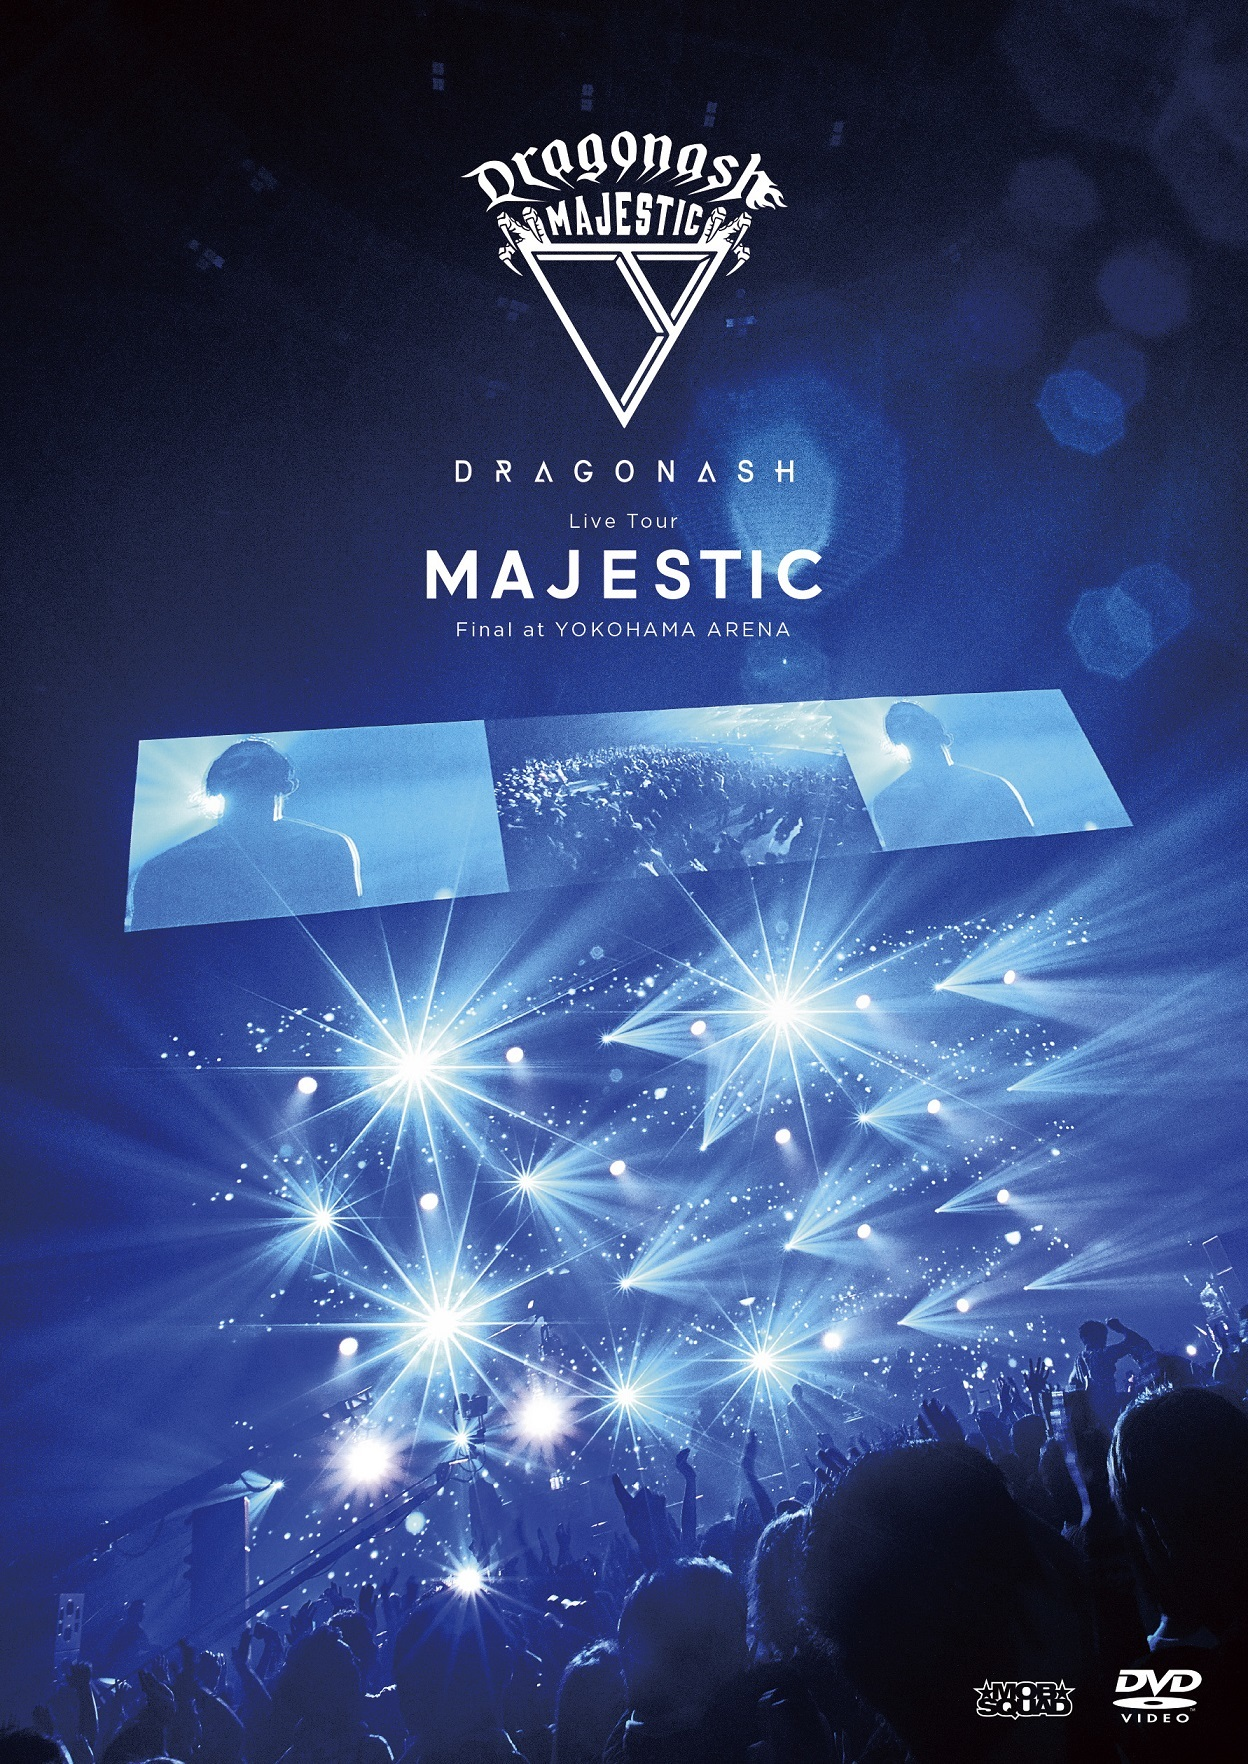 『Live Tour MAJESTIC Final at YOKOHAMA ARENA』通常盤DVD